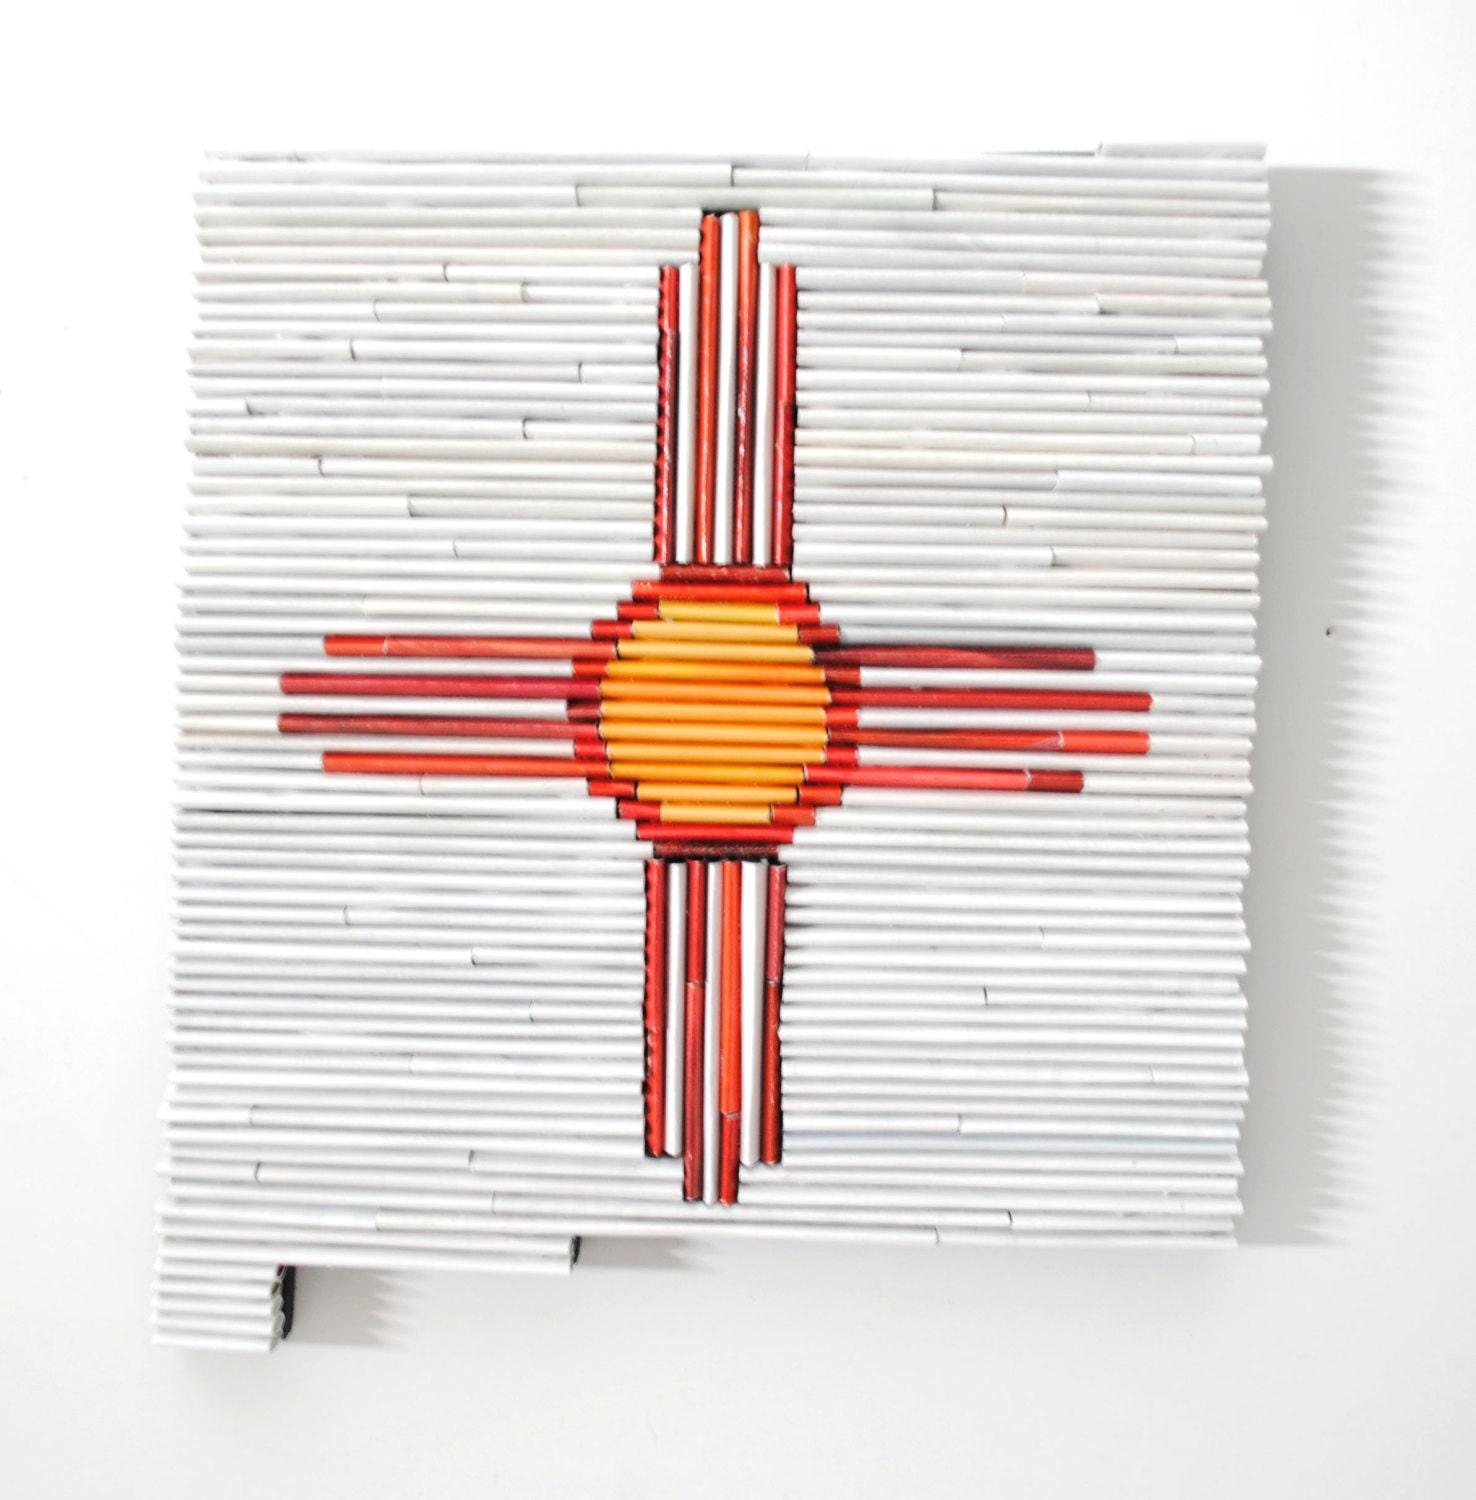 New mexico recycled magazine state wall art state flag - Magazine wall decor ...